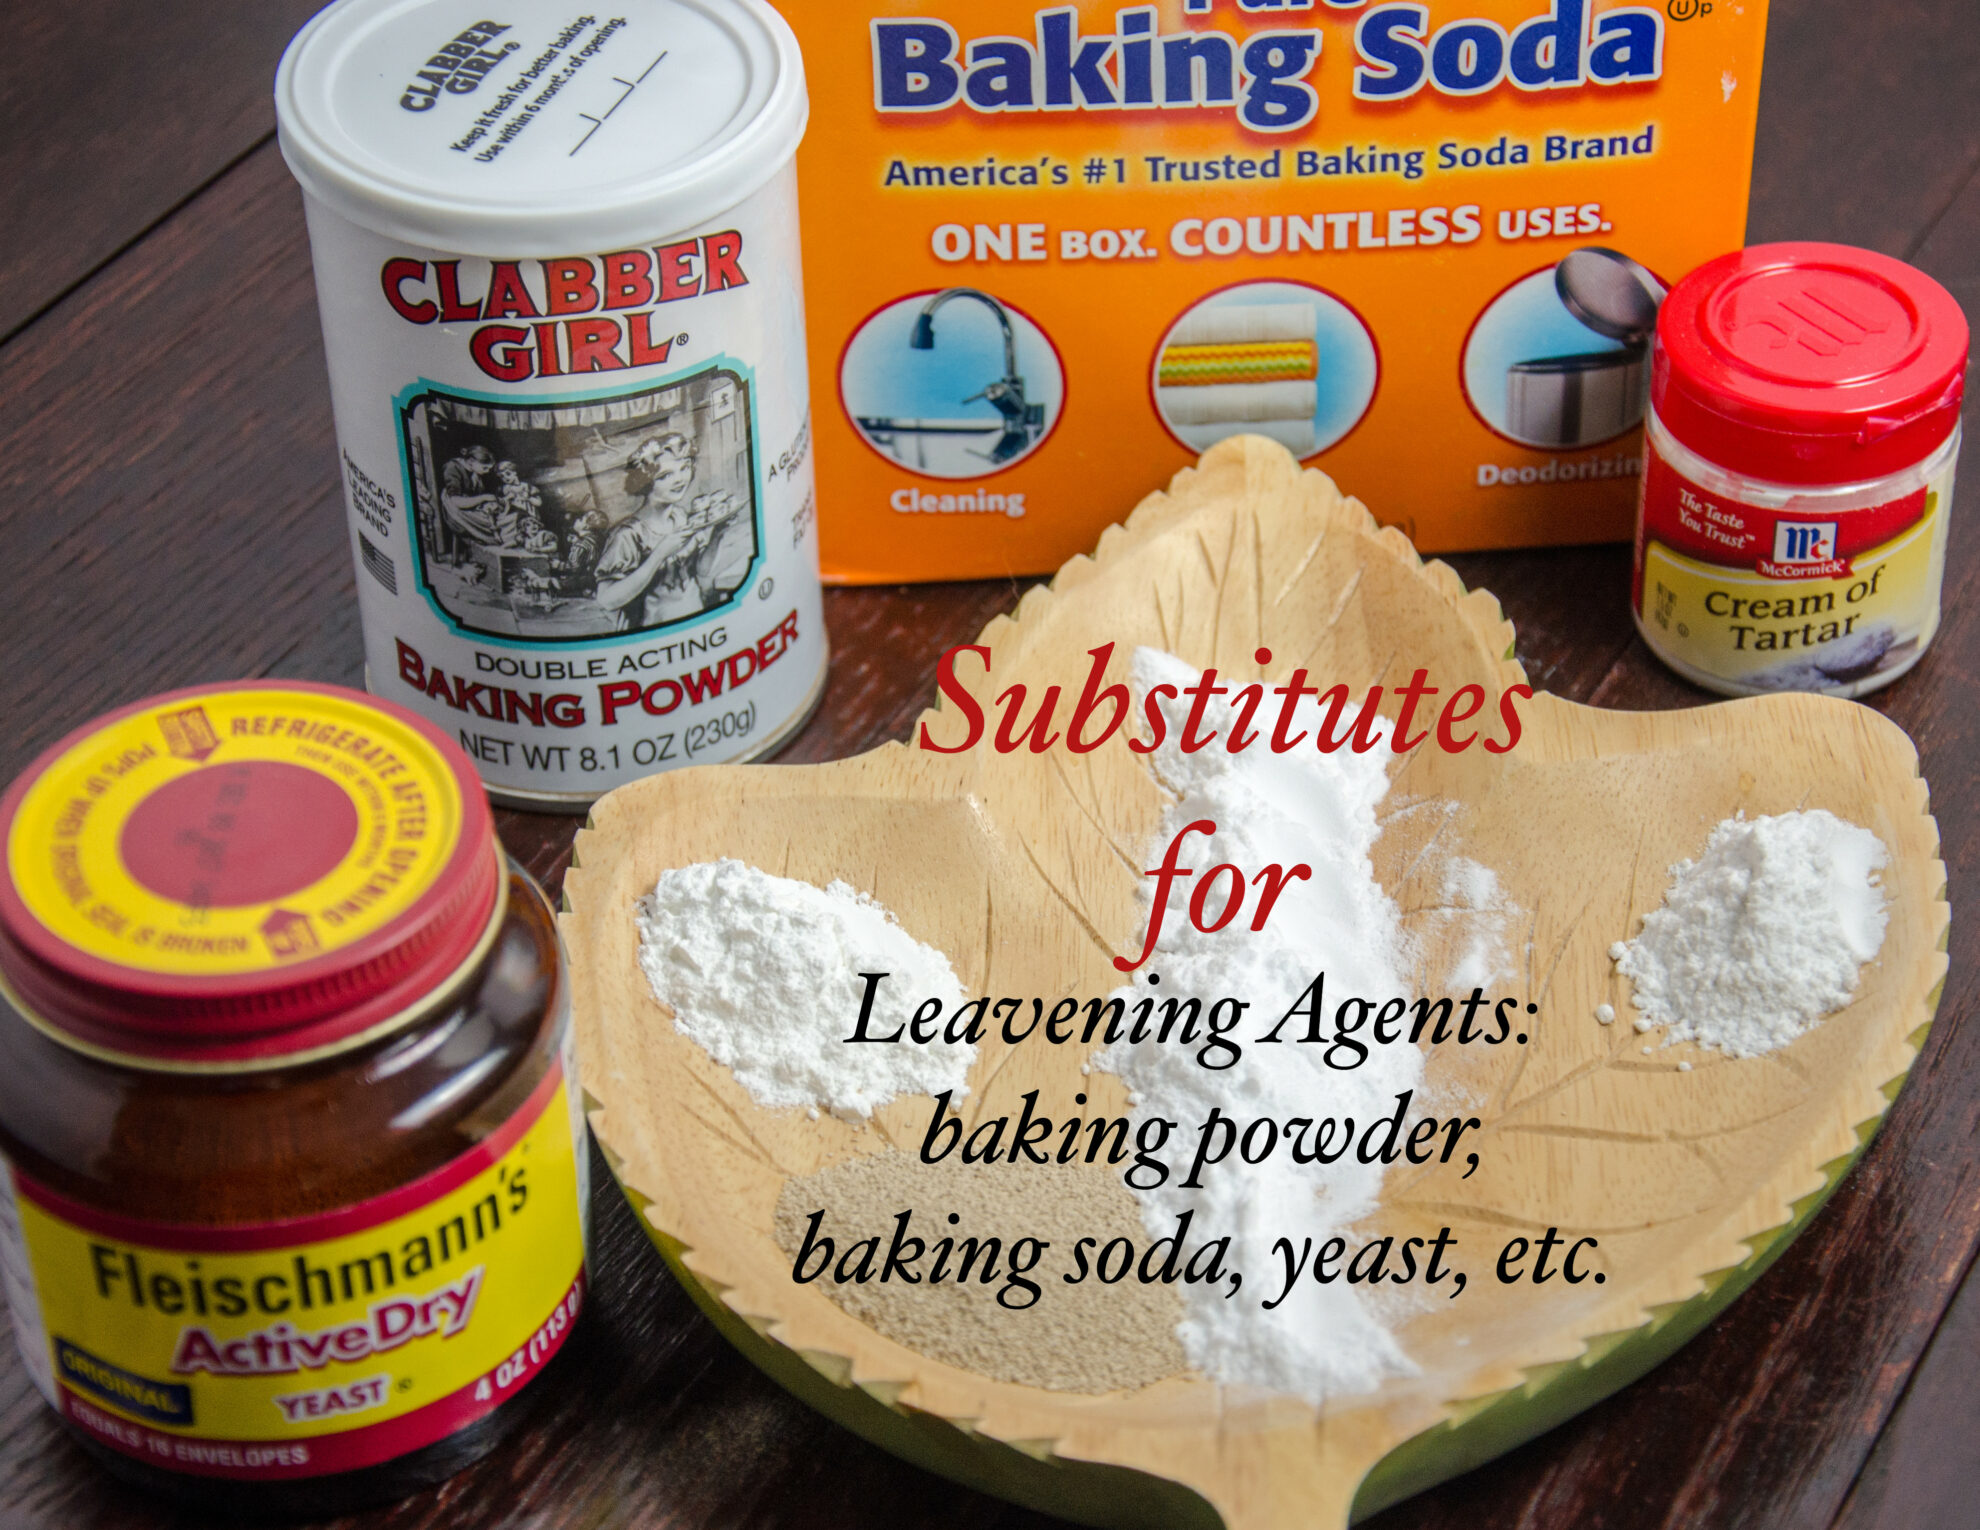 Substitutes for leaveners: baking powder, baking soda, yeast, etc. Everything you need to know!